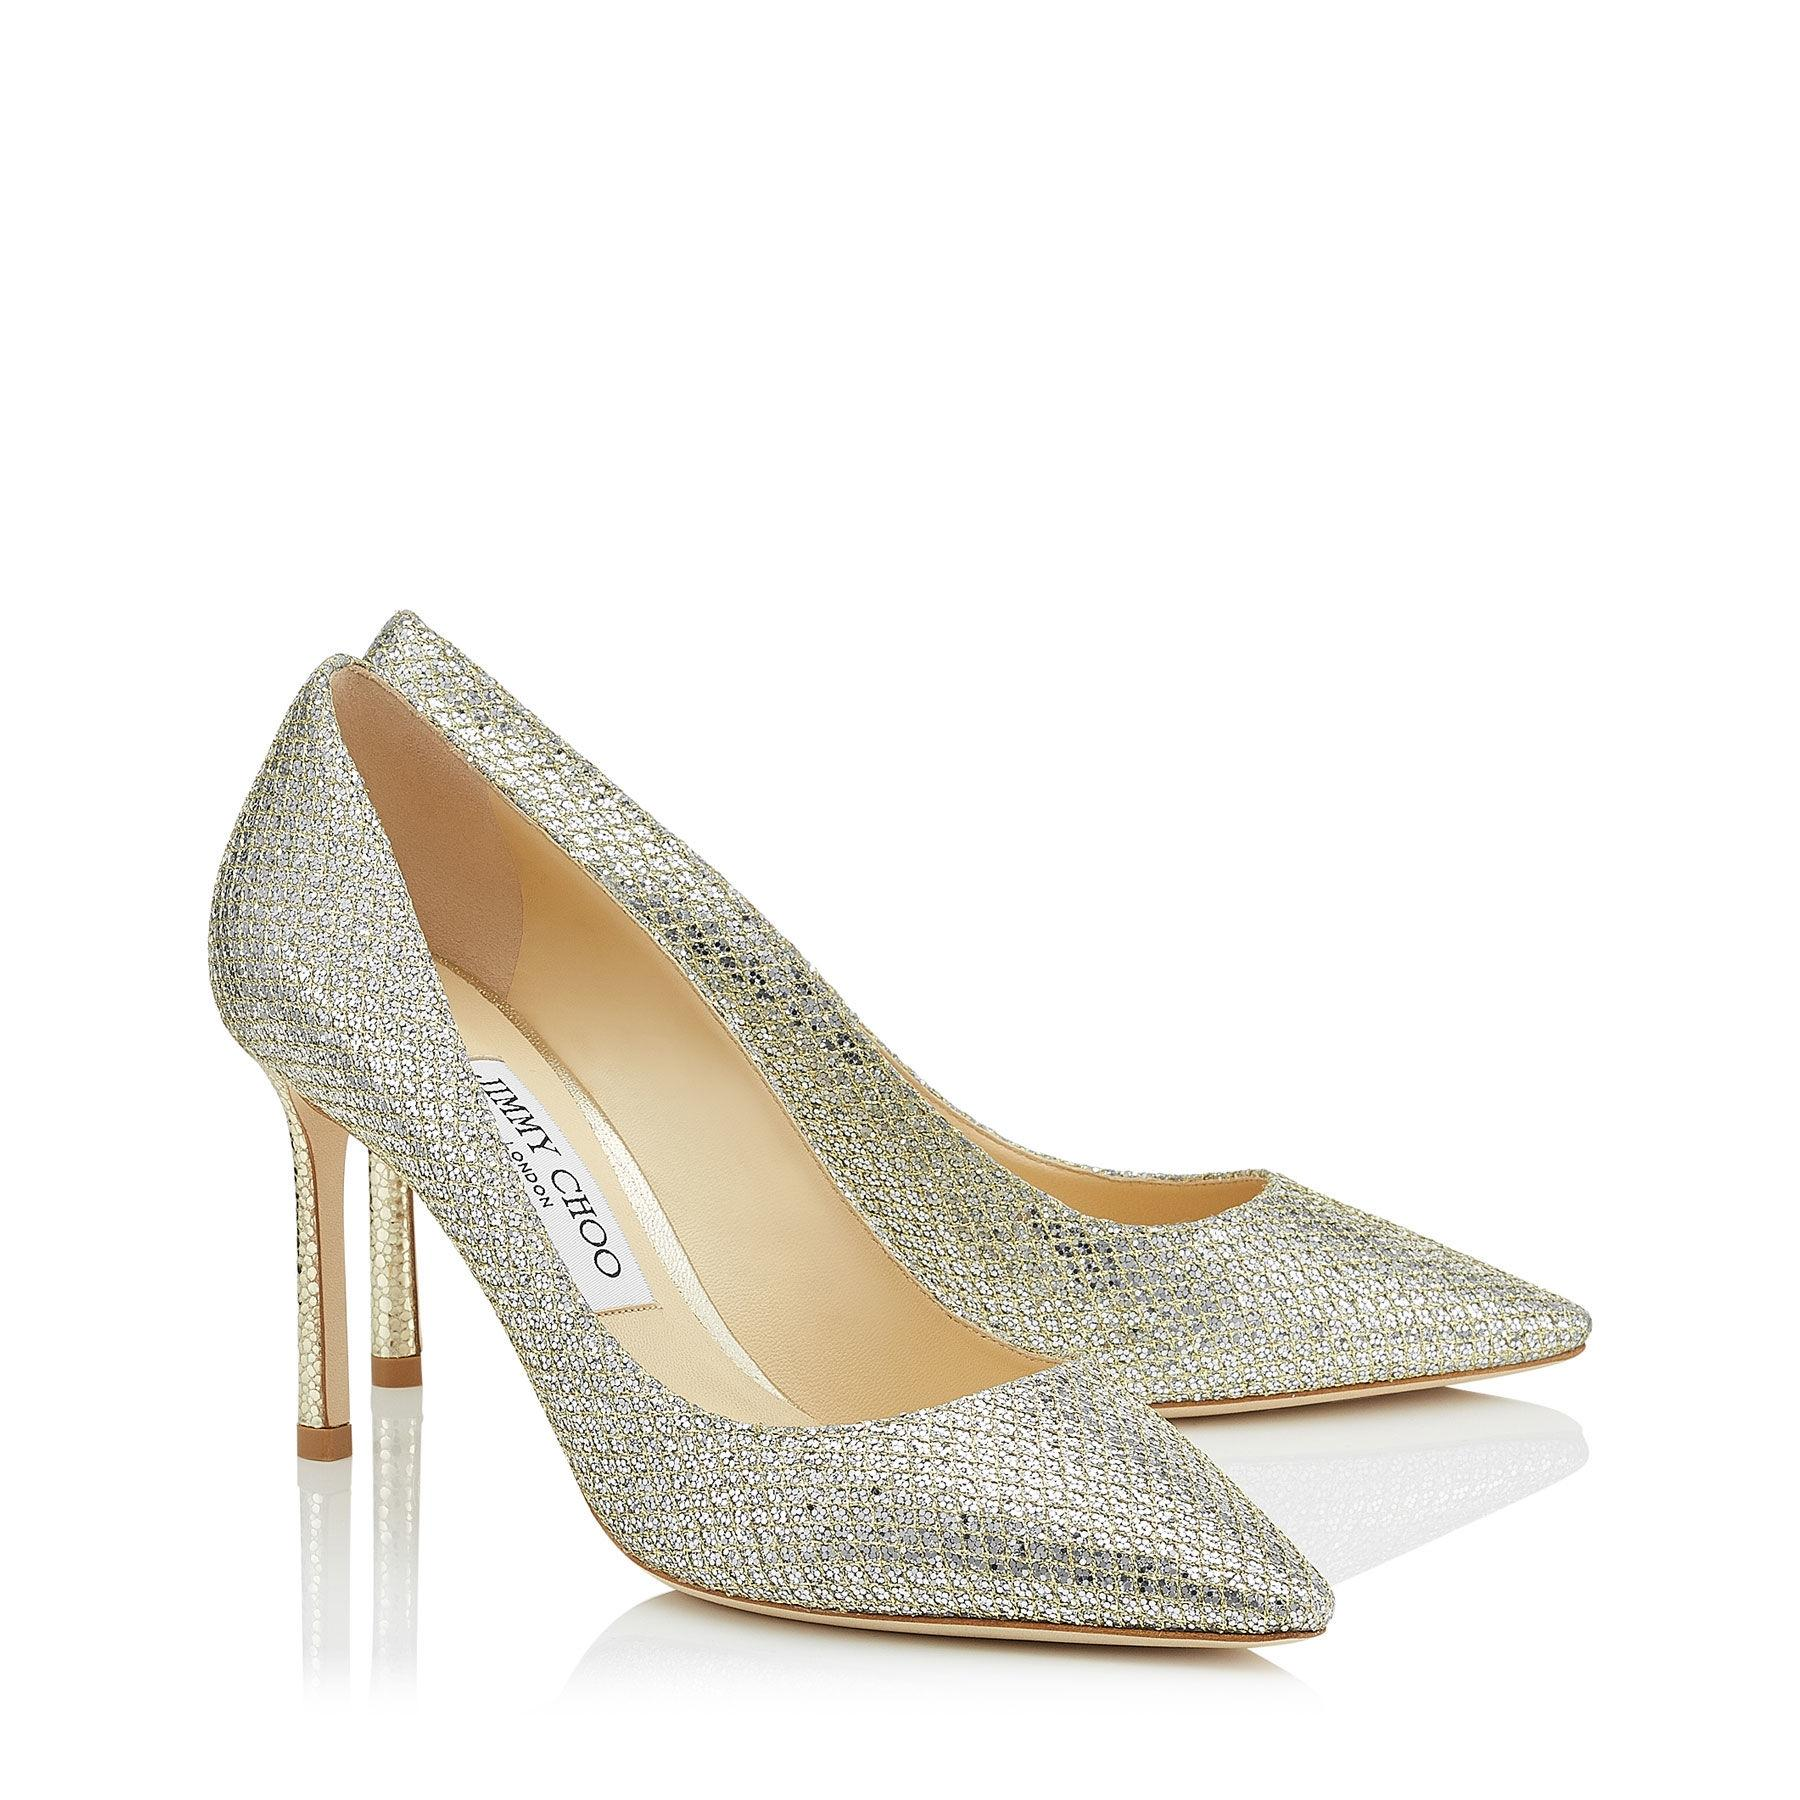 Pumps Romy 100 fabric glitter rose Jimmy Choo London xx2Vit